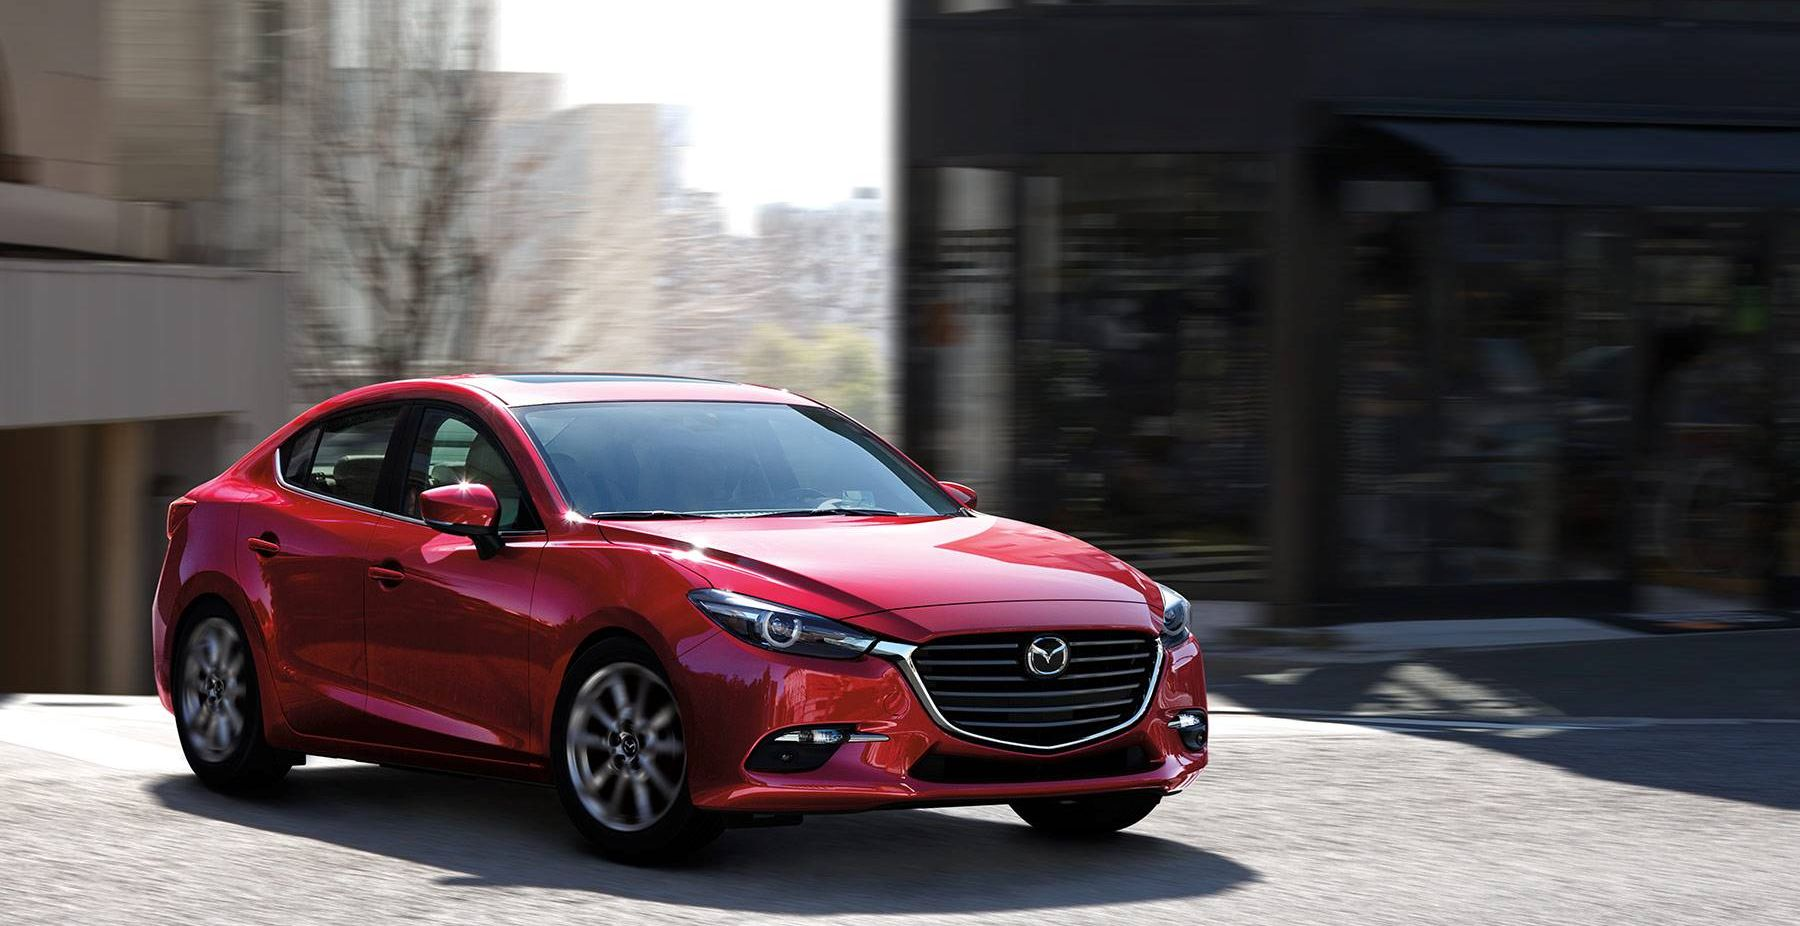 2018 Mazda3 Financing near New Braunfels, TX